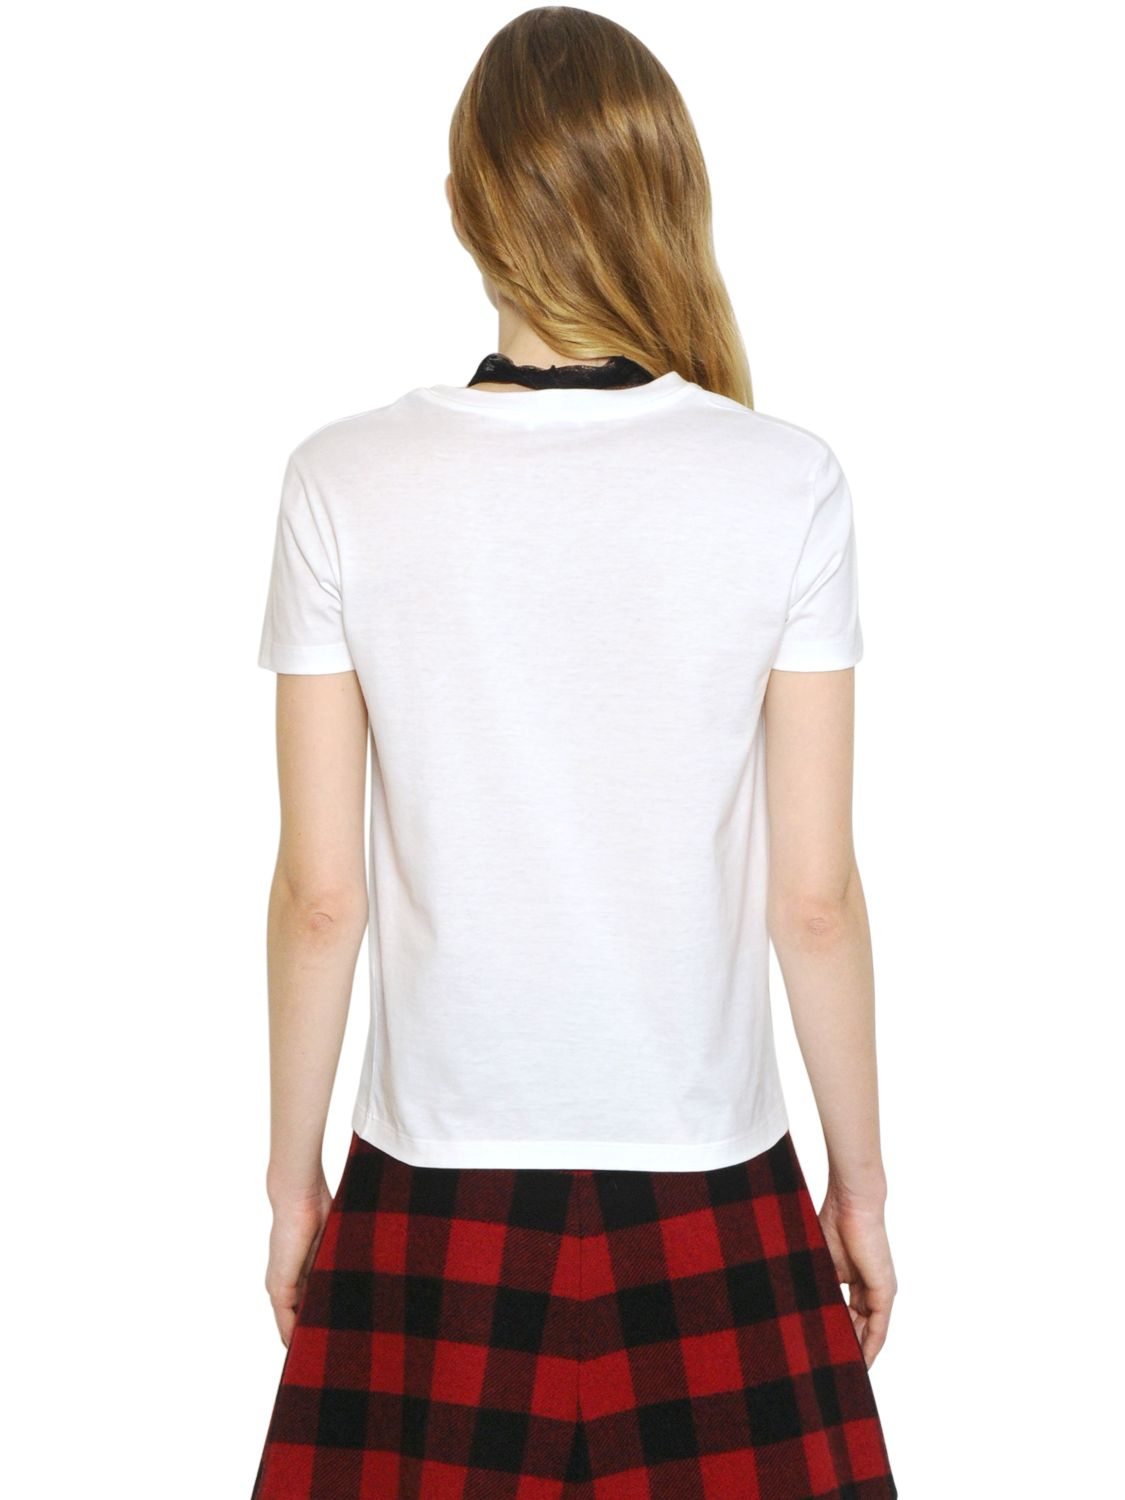 6a36616f868d1 Lyst - RED Valentino Circus Printed Cotton T-Shirt With Scarf in White